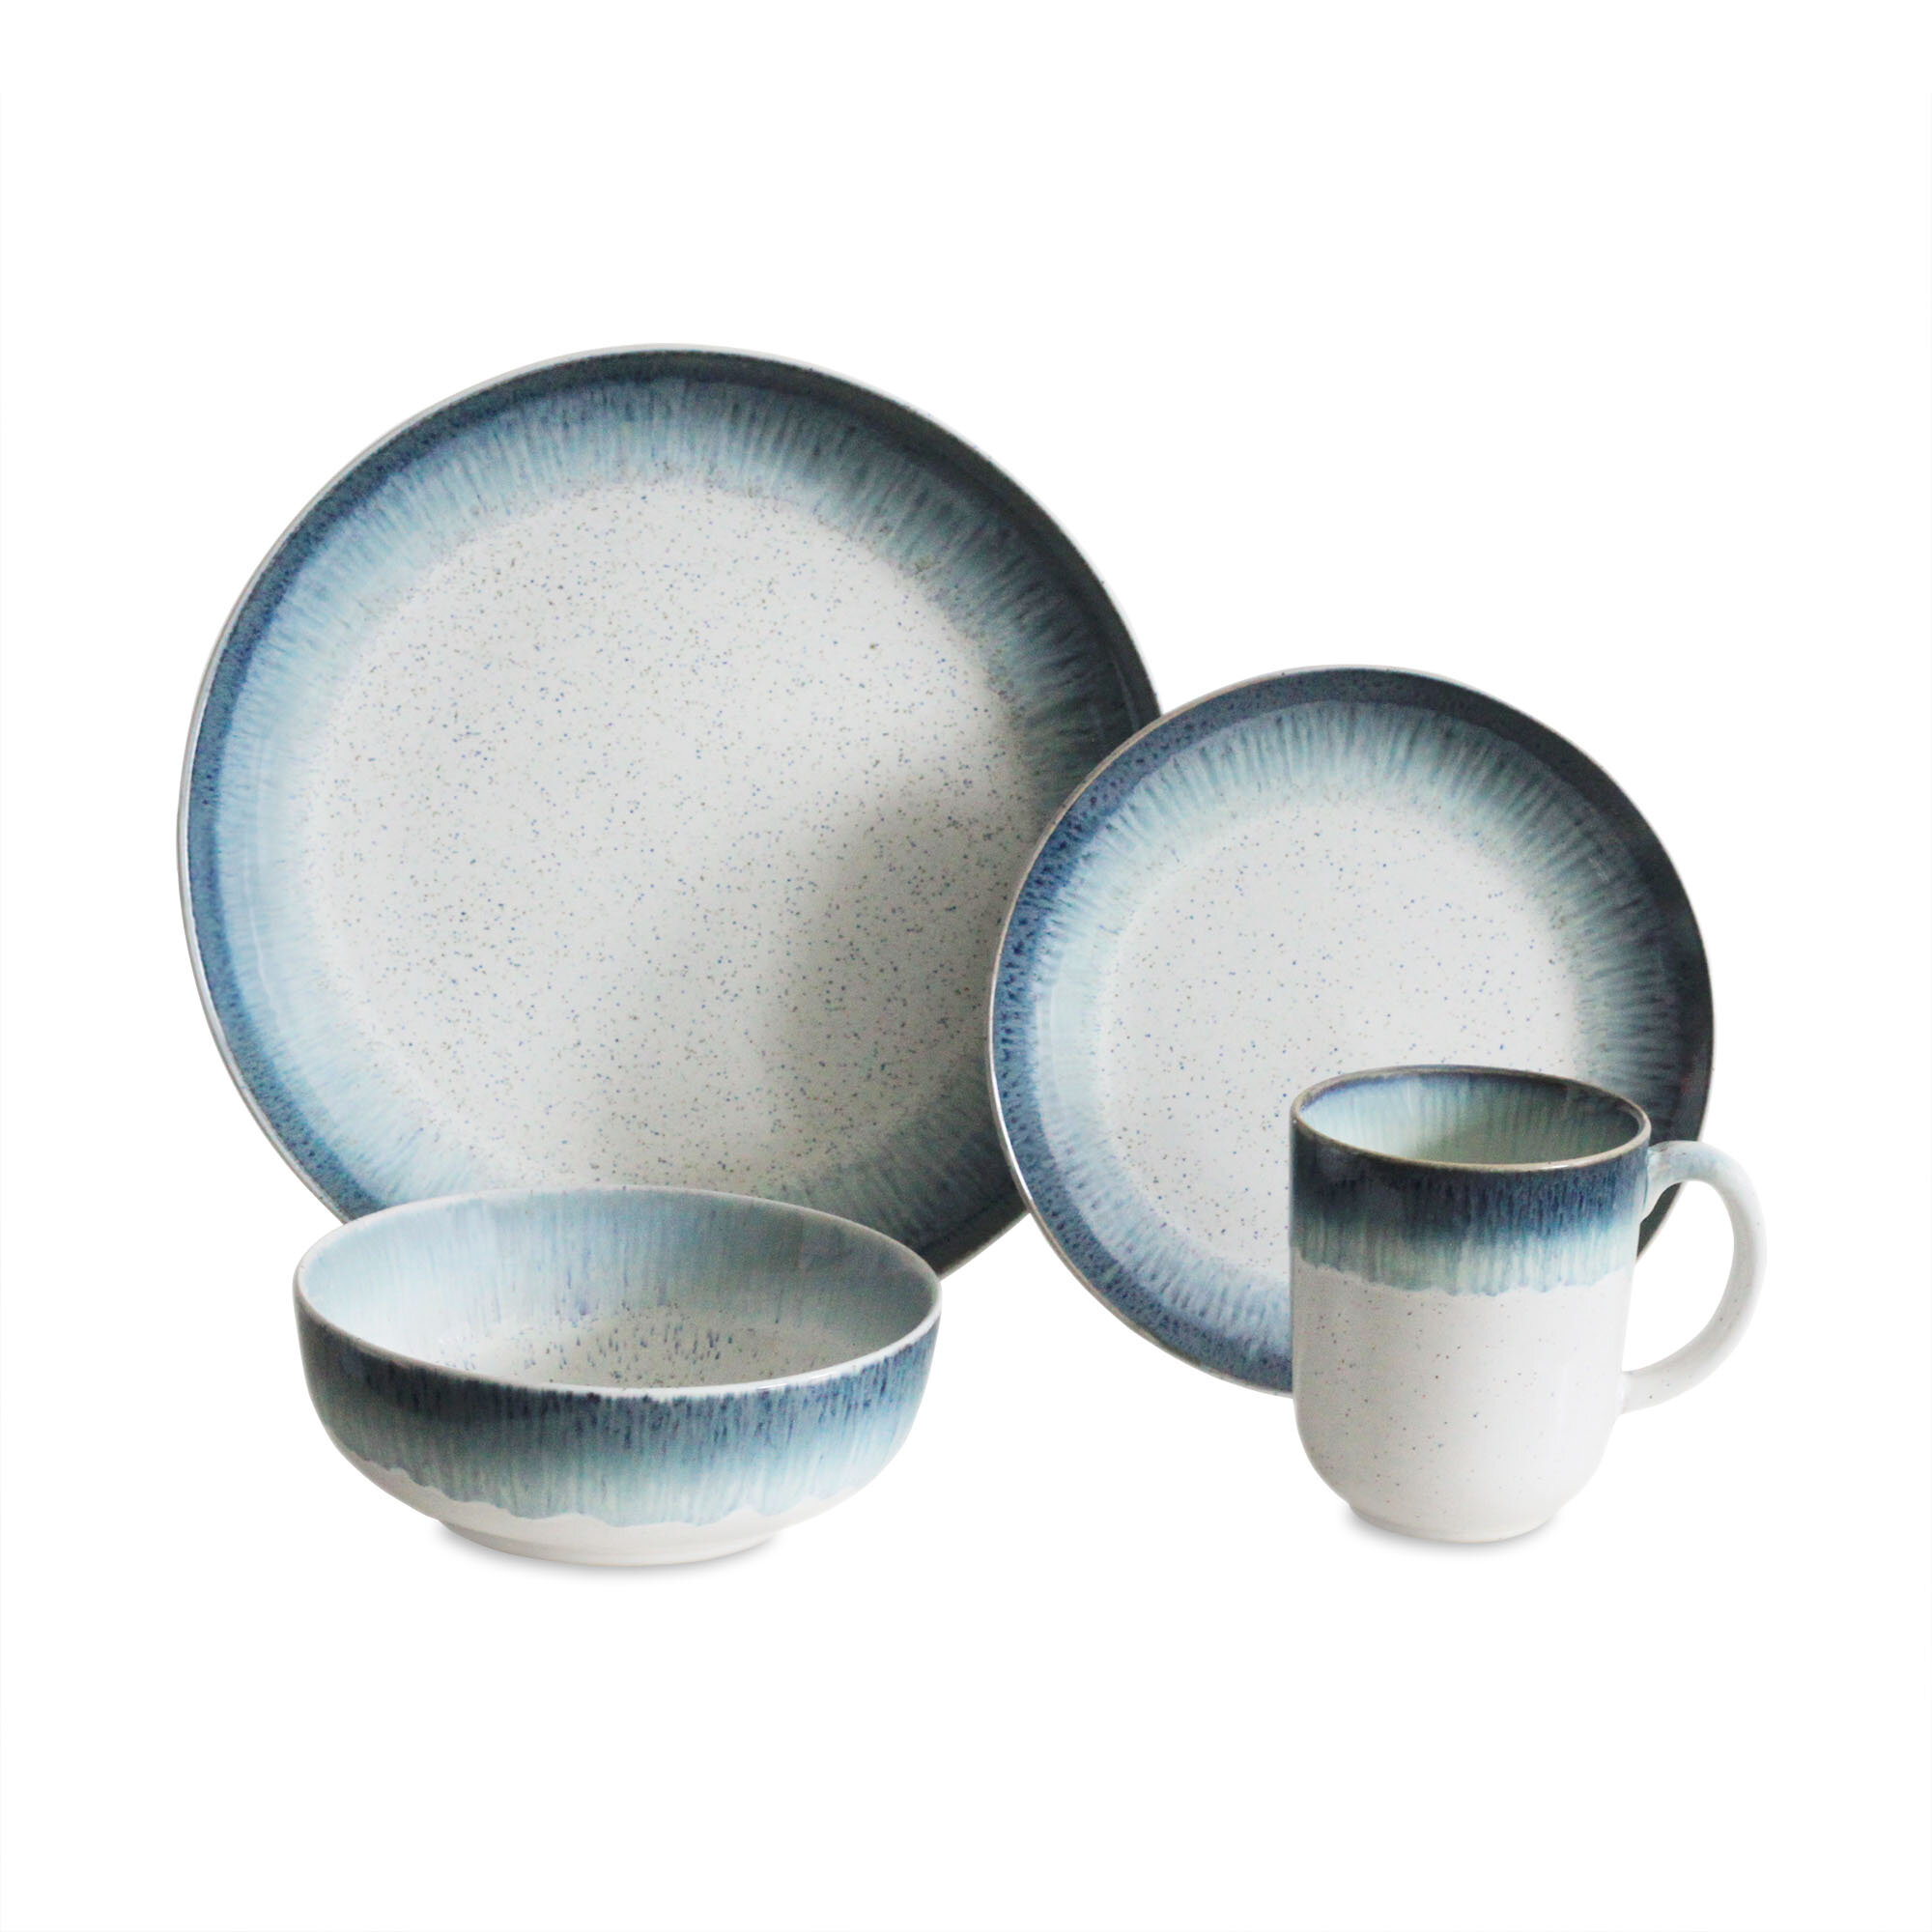 sc 1 st  Wayfair & Baum Marina 16 Piece Dinnerware Set Service for 4 u0026 Reviews | Wayfair